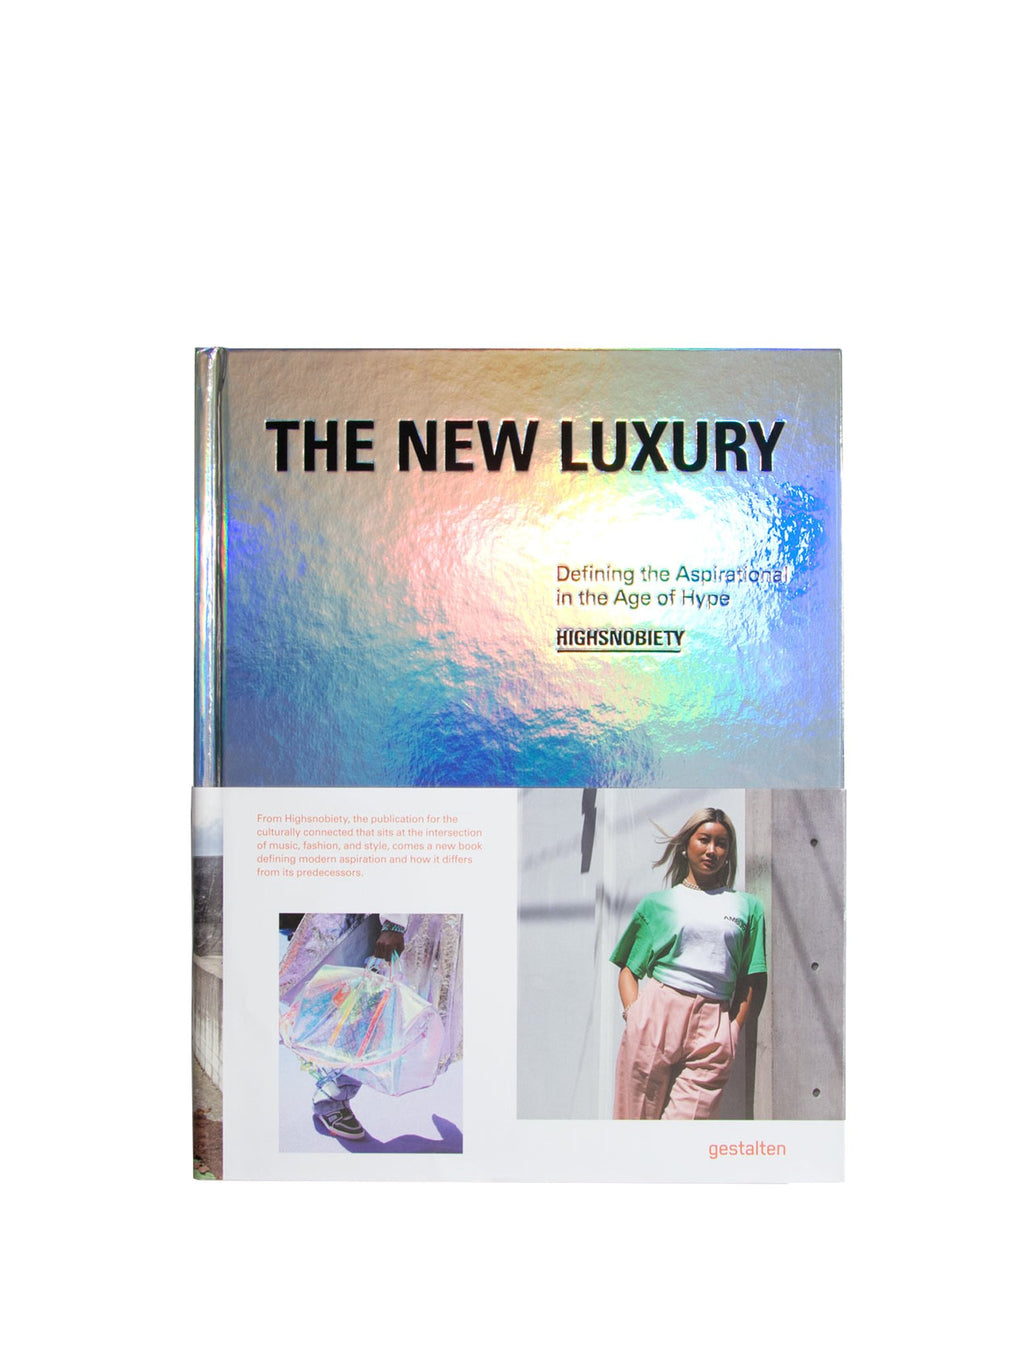 The New Luxury Highsnobiety Book